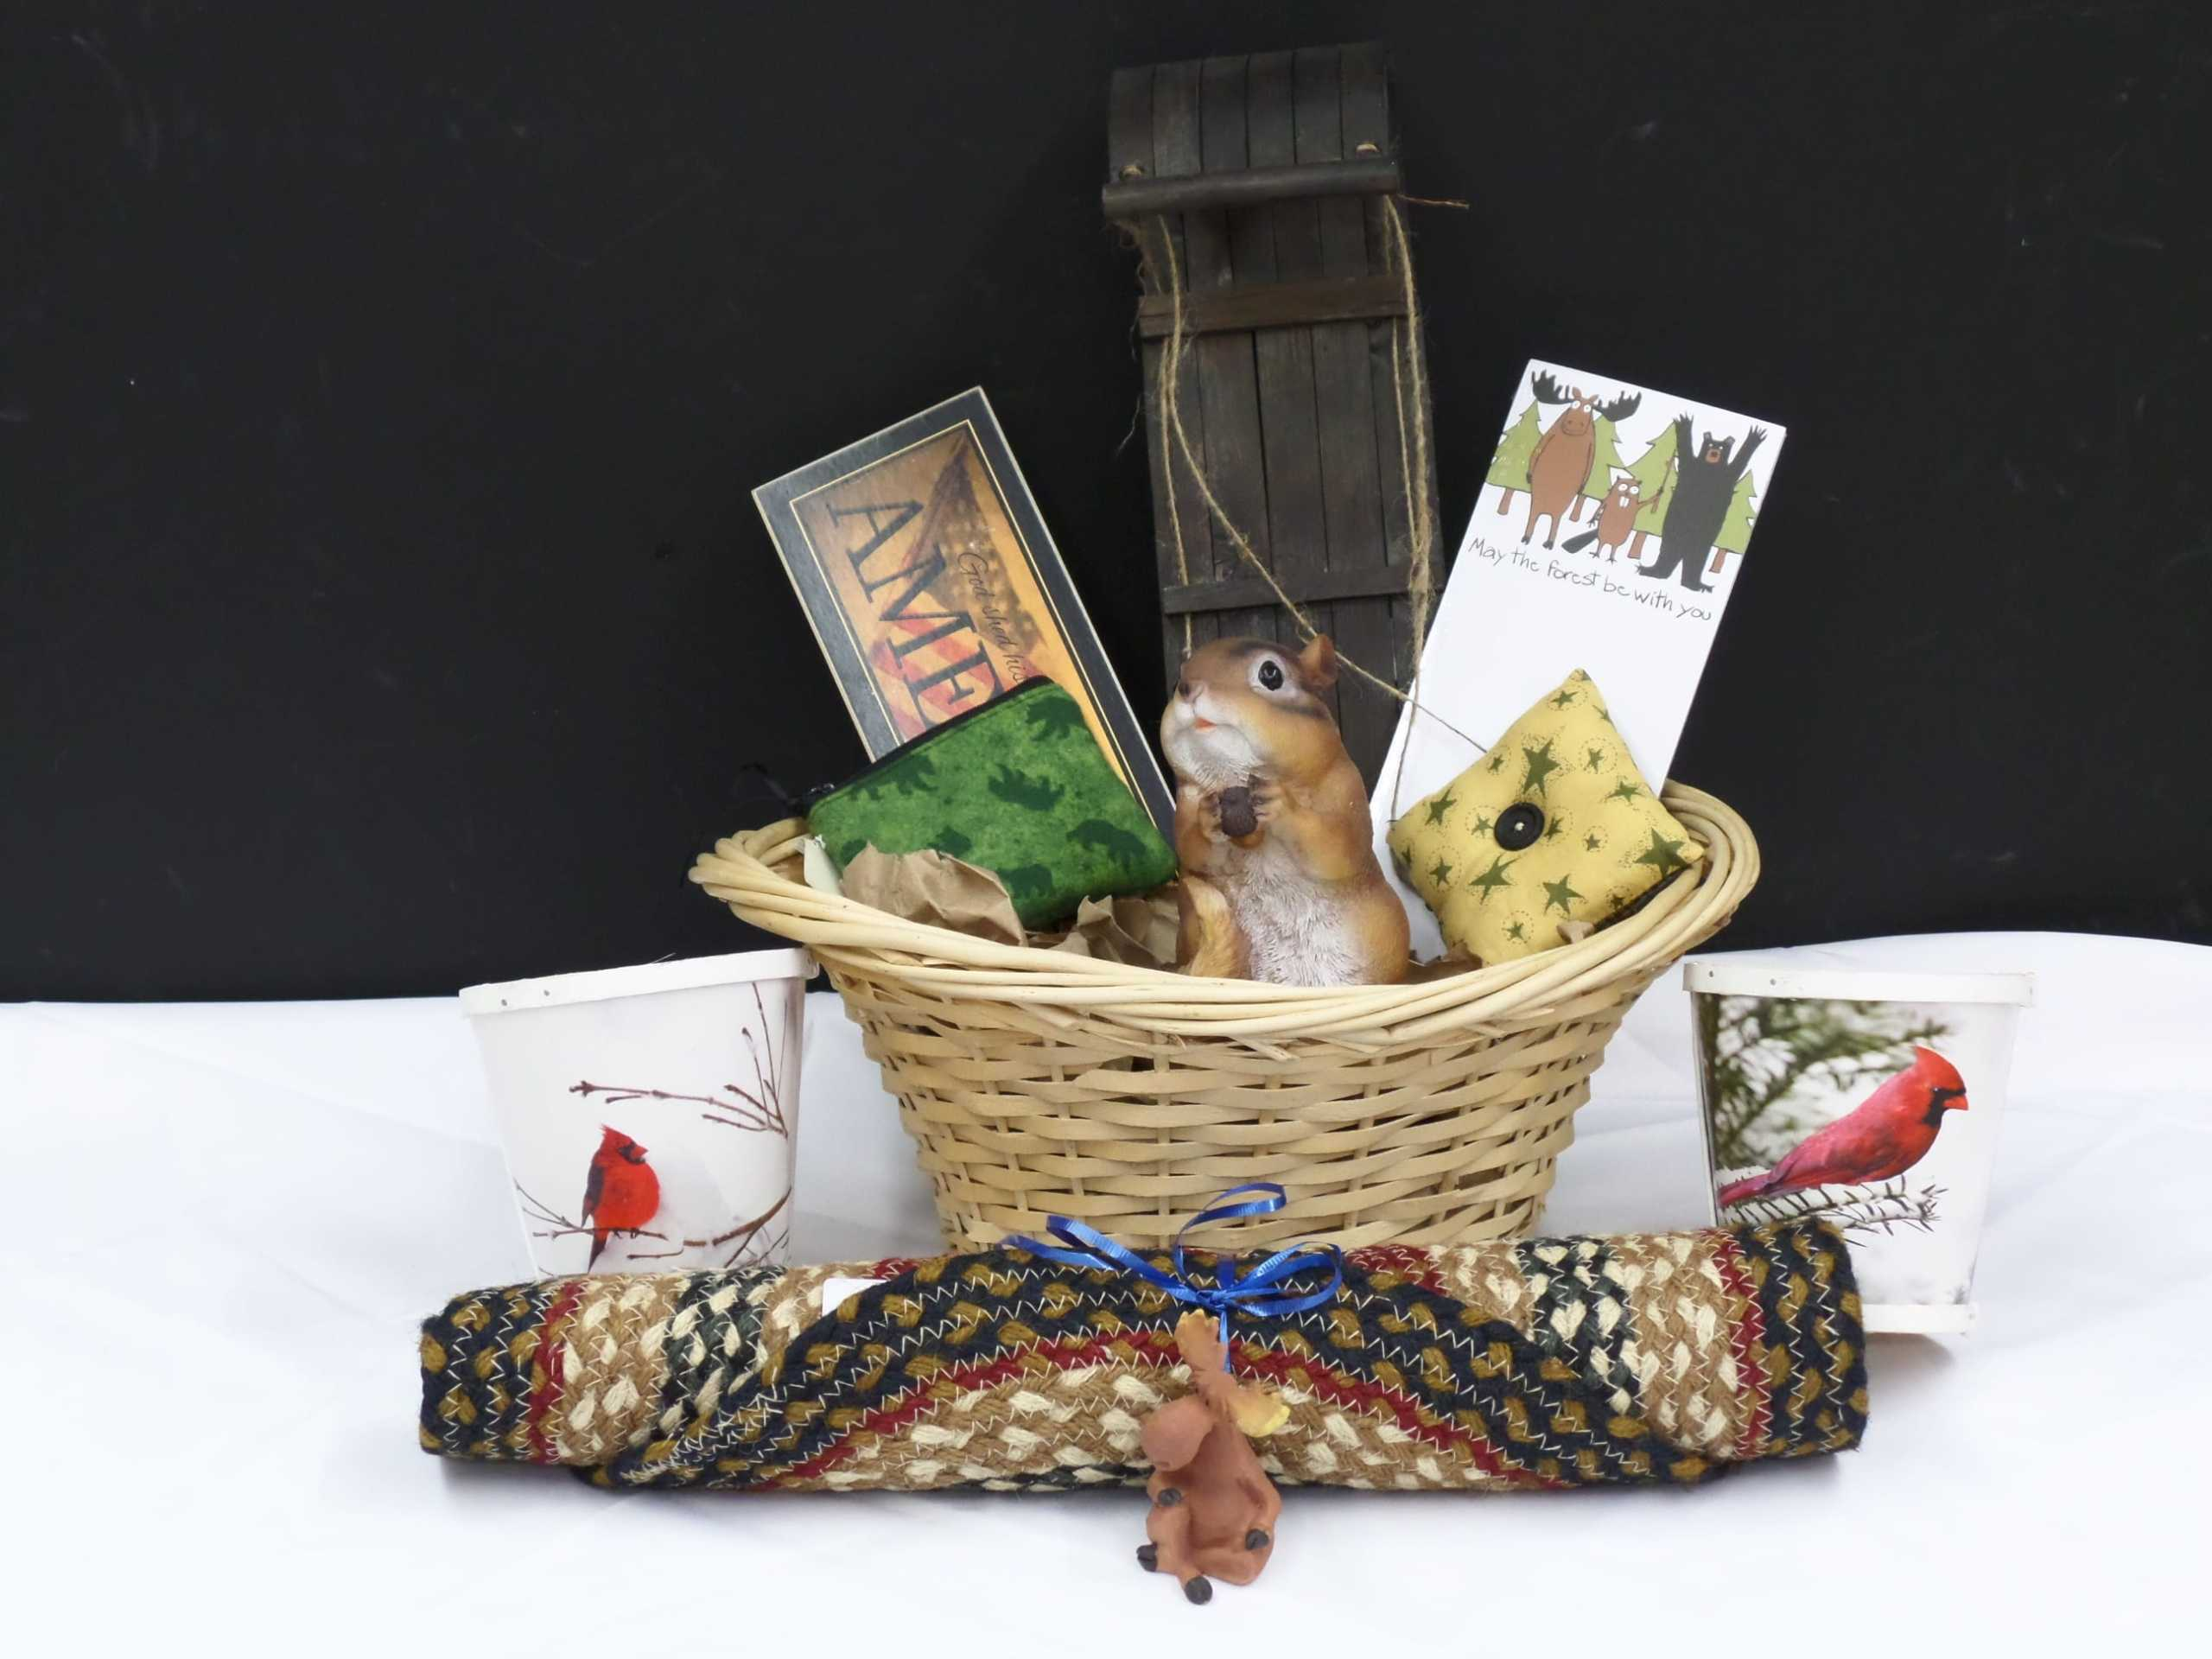 GIFT BASKET  Donated by: NYS WOODSMEN'S FIELD DAYS  Valued at: $100